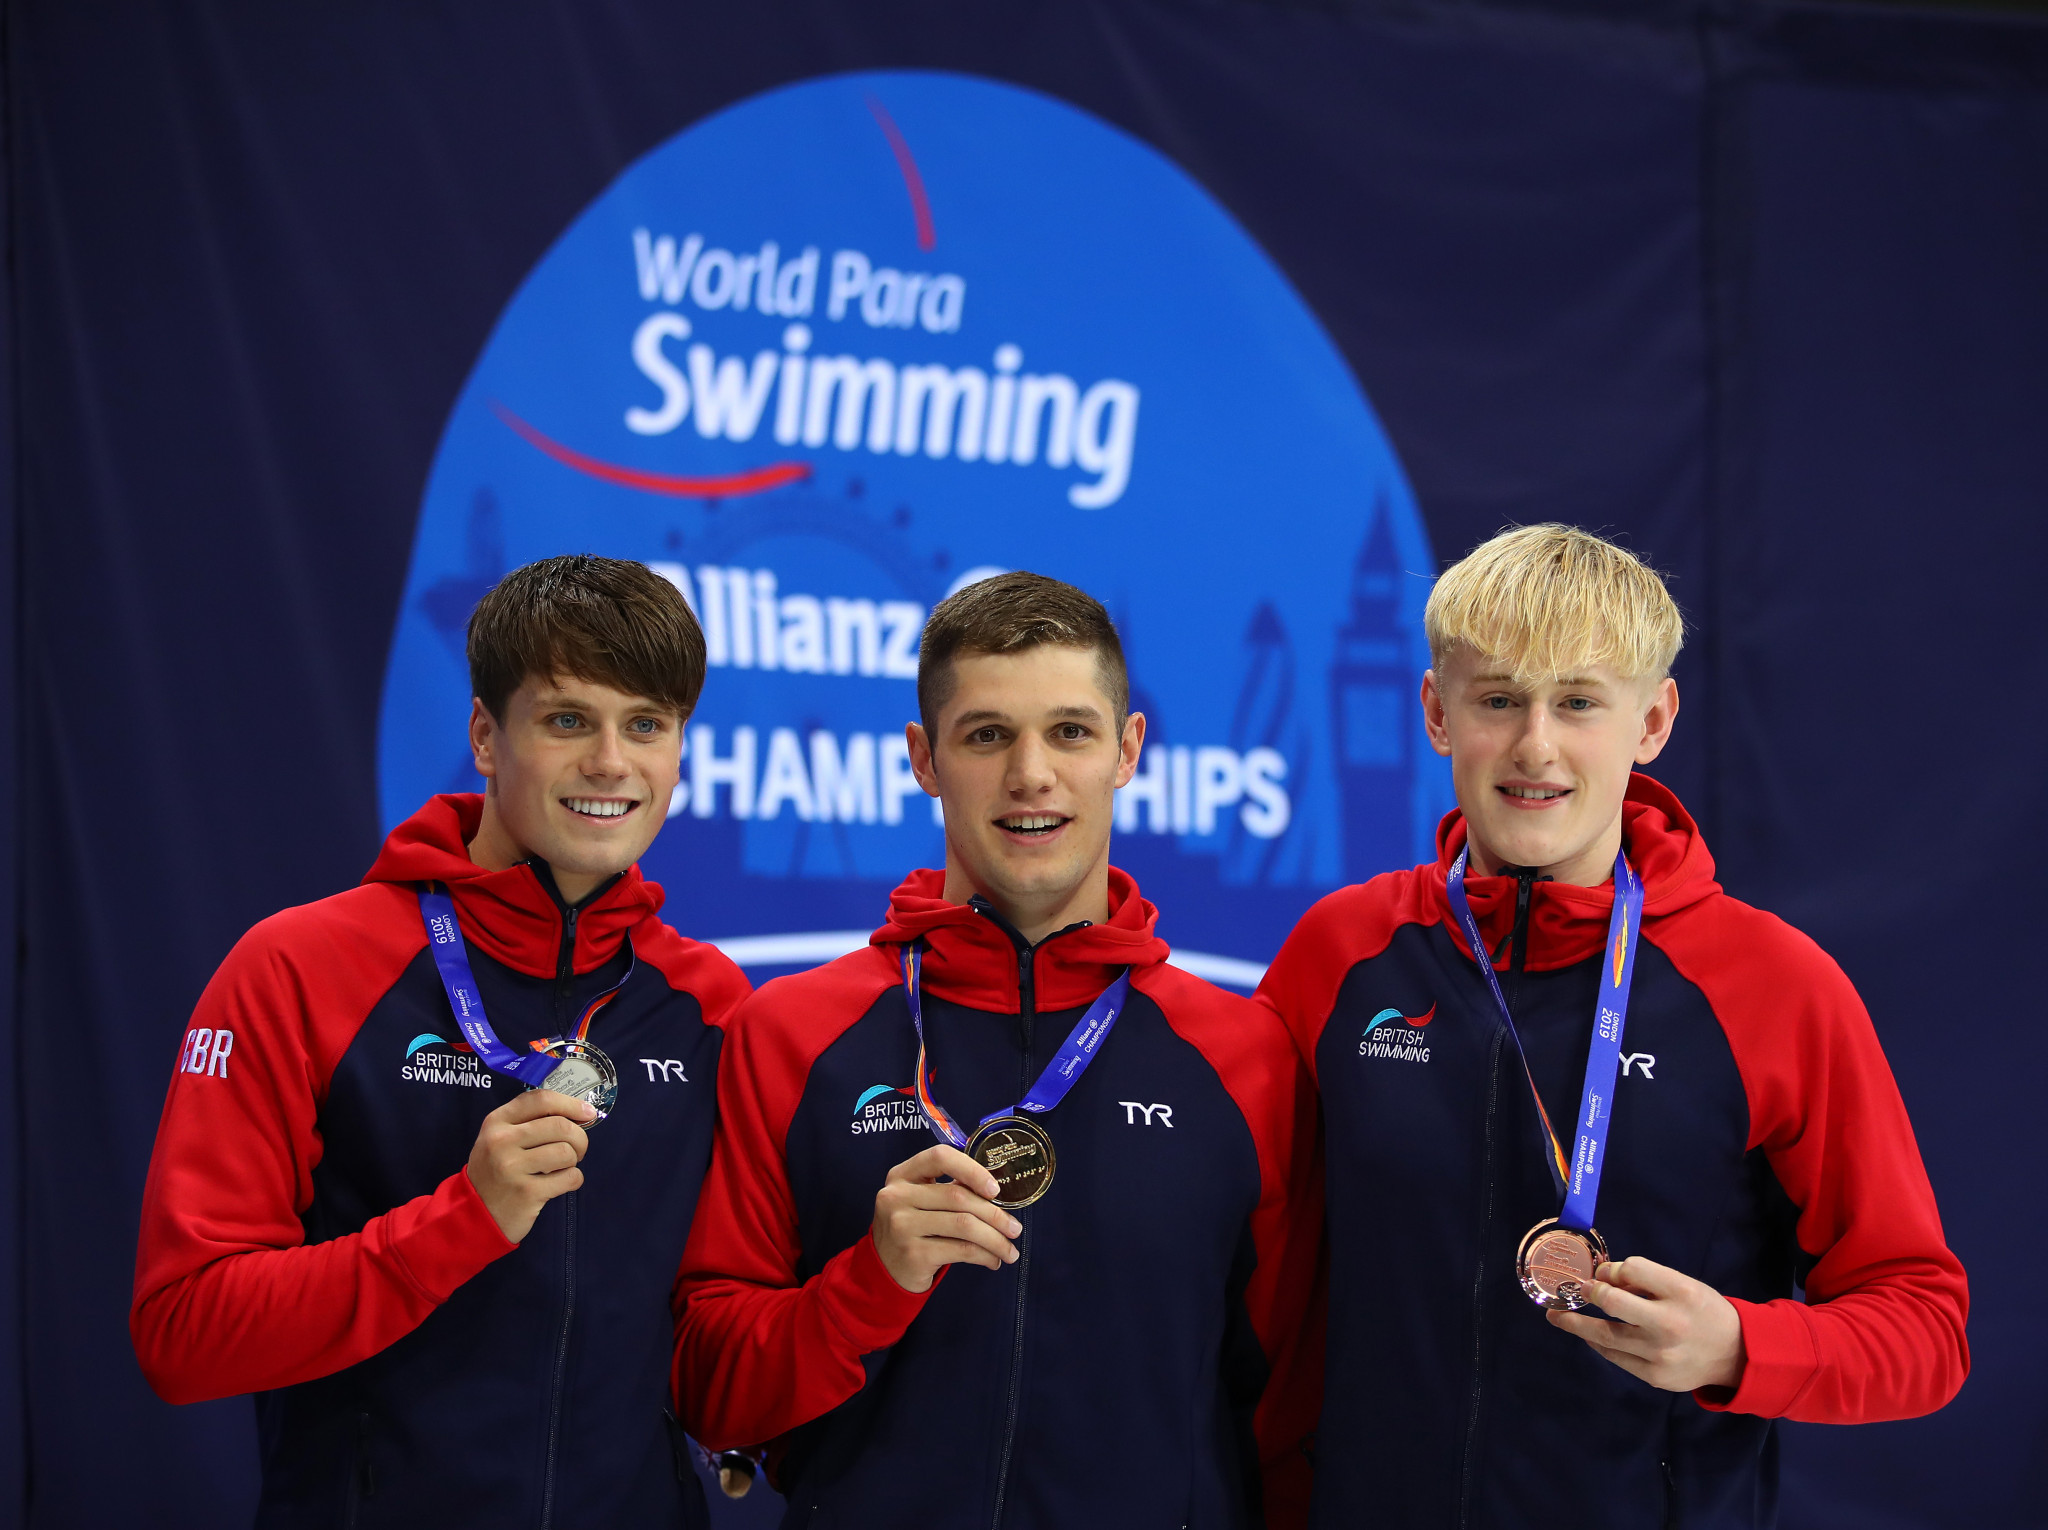 Reece Dunn, centre, led home a British podium sweep in the men's S14 200m freestyle final in London ©Getty Images